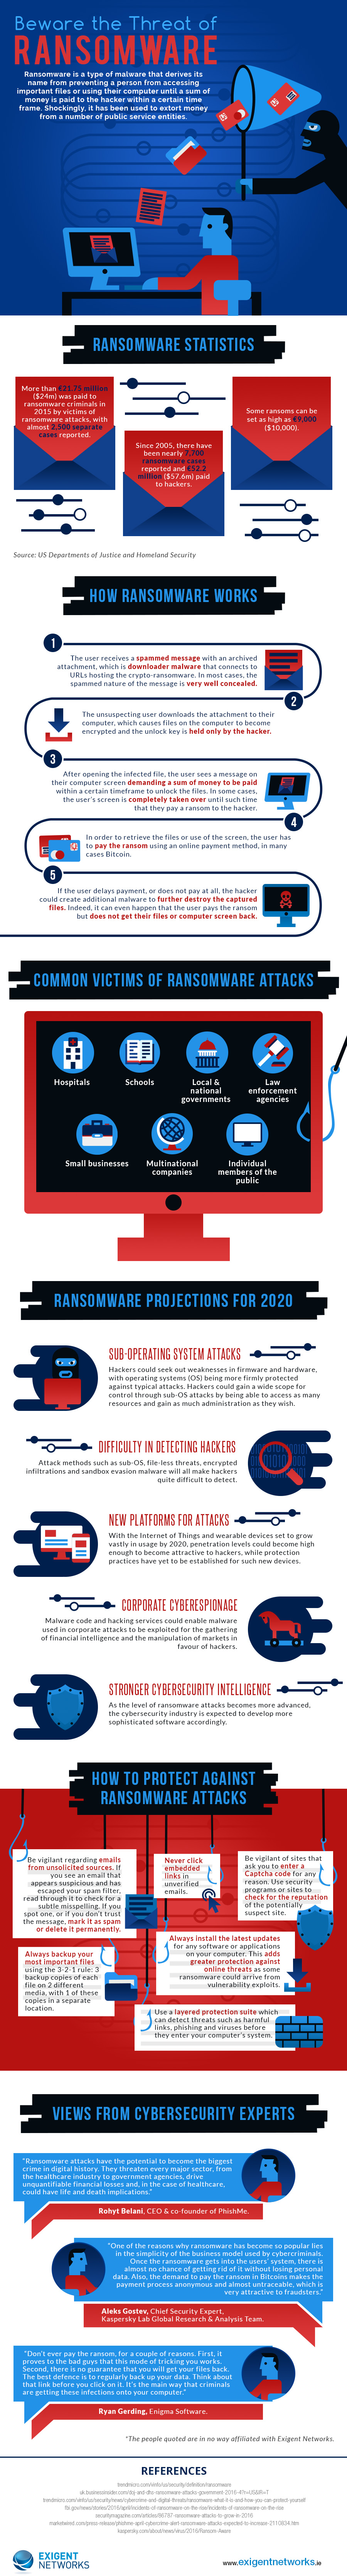 The-6-steps-you-can-take-to-protect-against-harmful-hackers